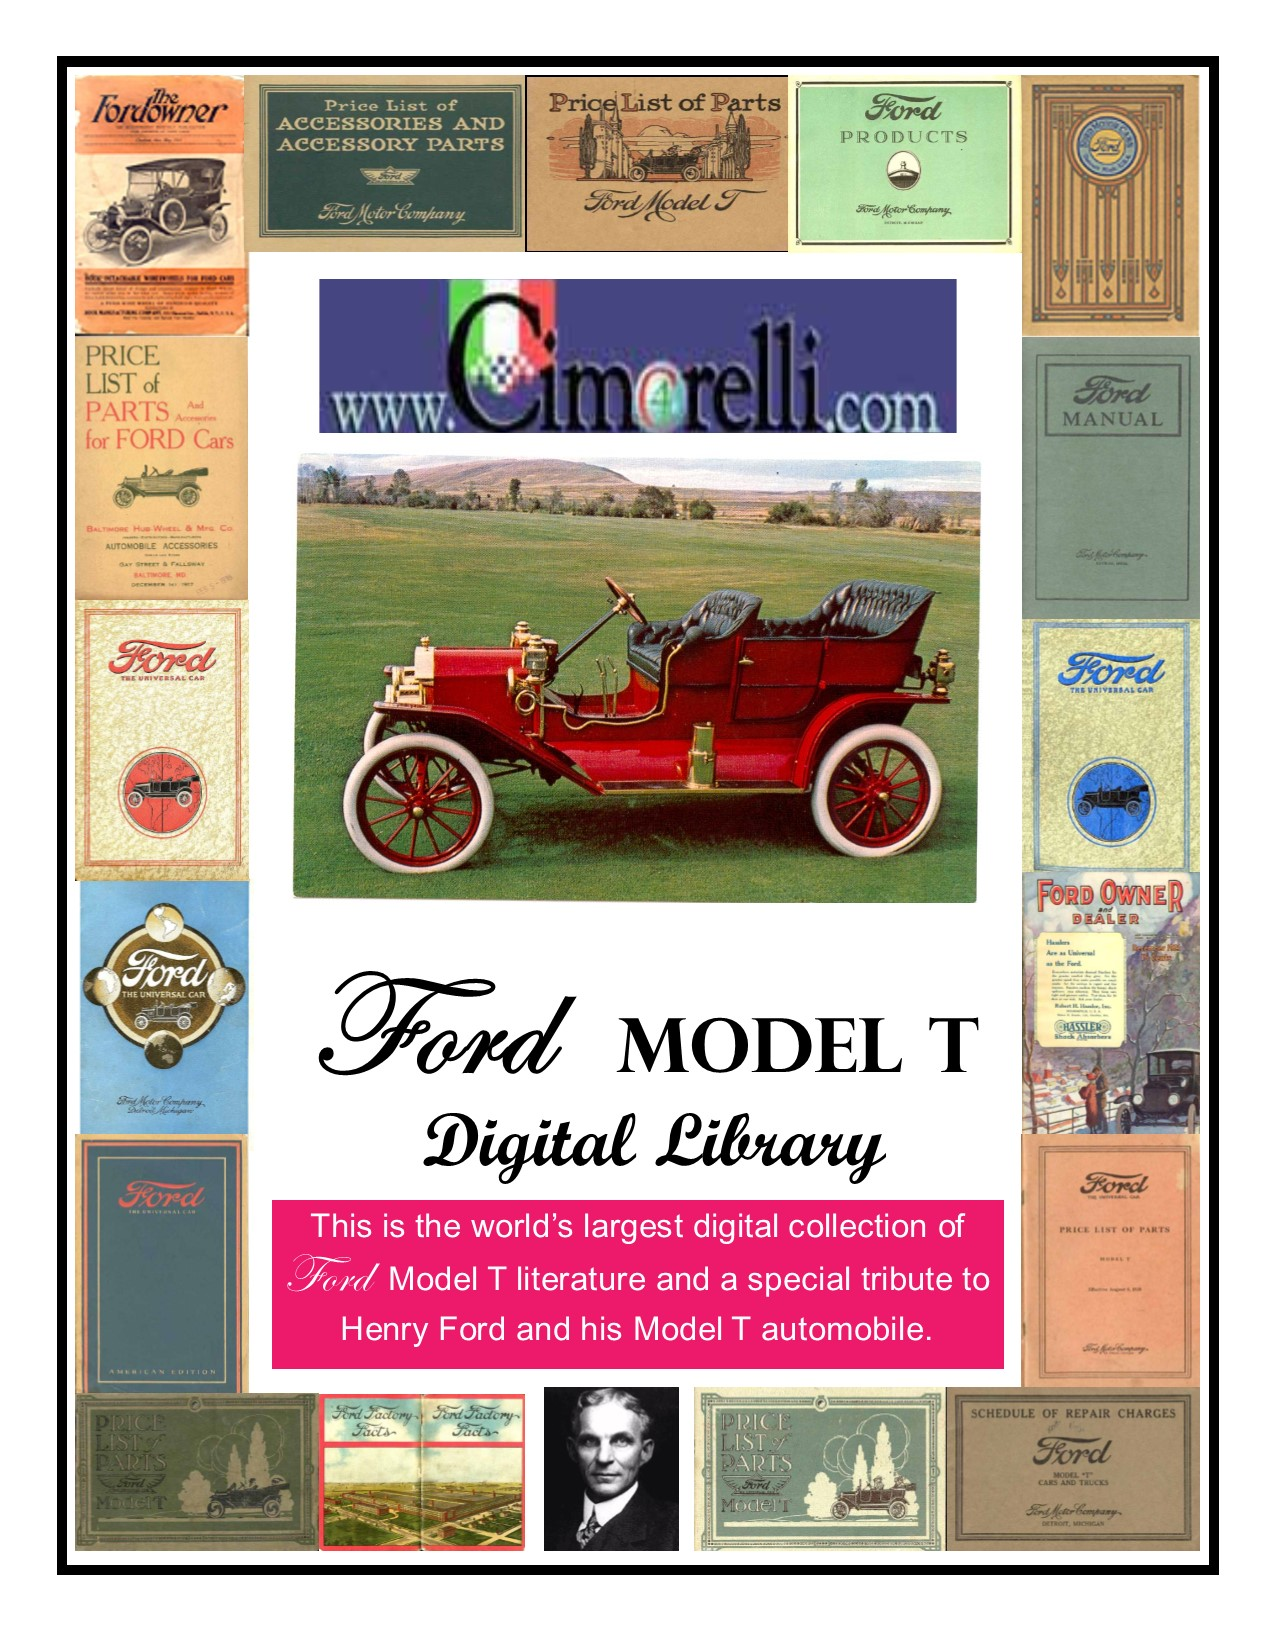 Image of the Model T Digital Library cover featuring a red 1909 Ford Model T  Touring.